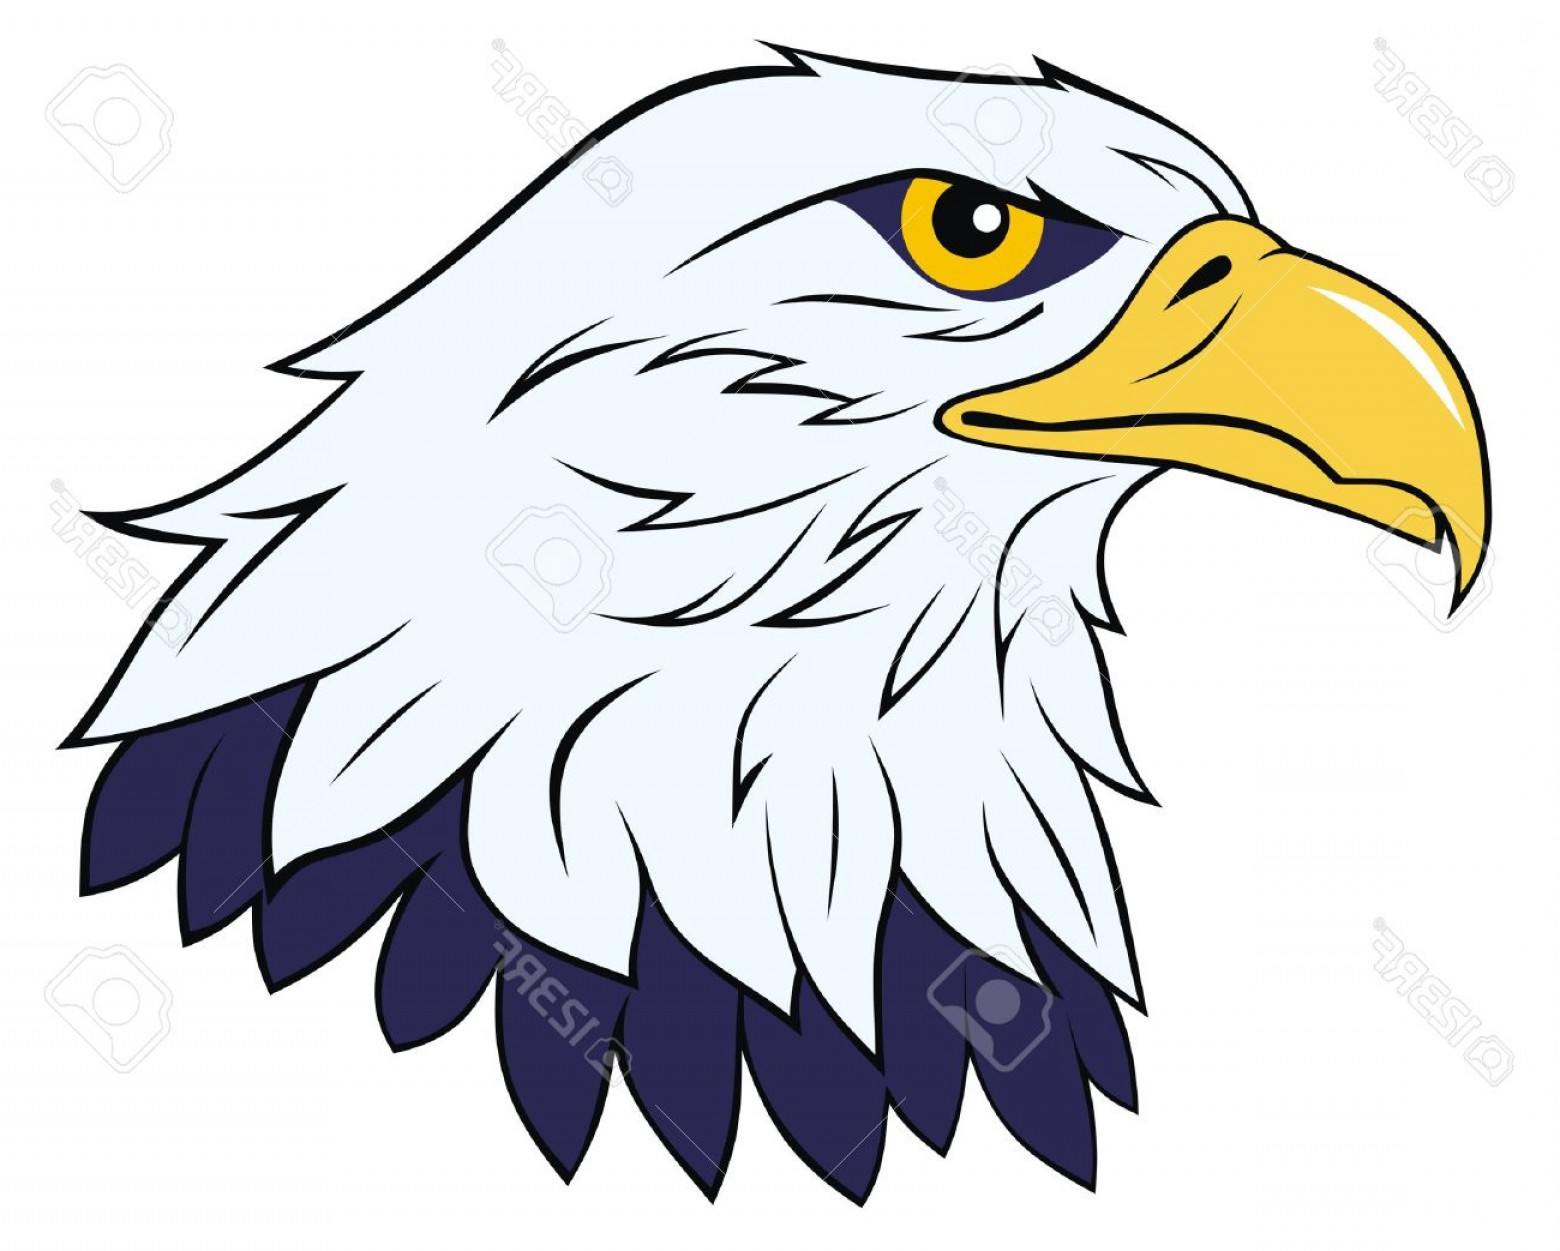 1560x1251 Photocolor Vector Illustration Of Eagle Head Arenawp